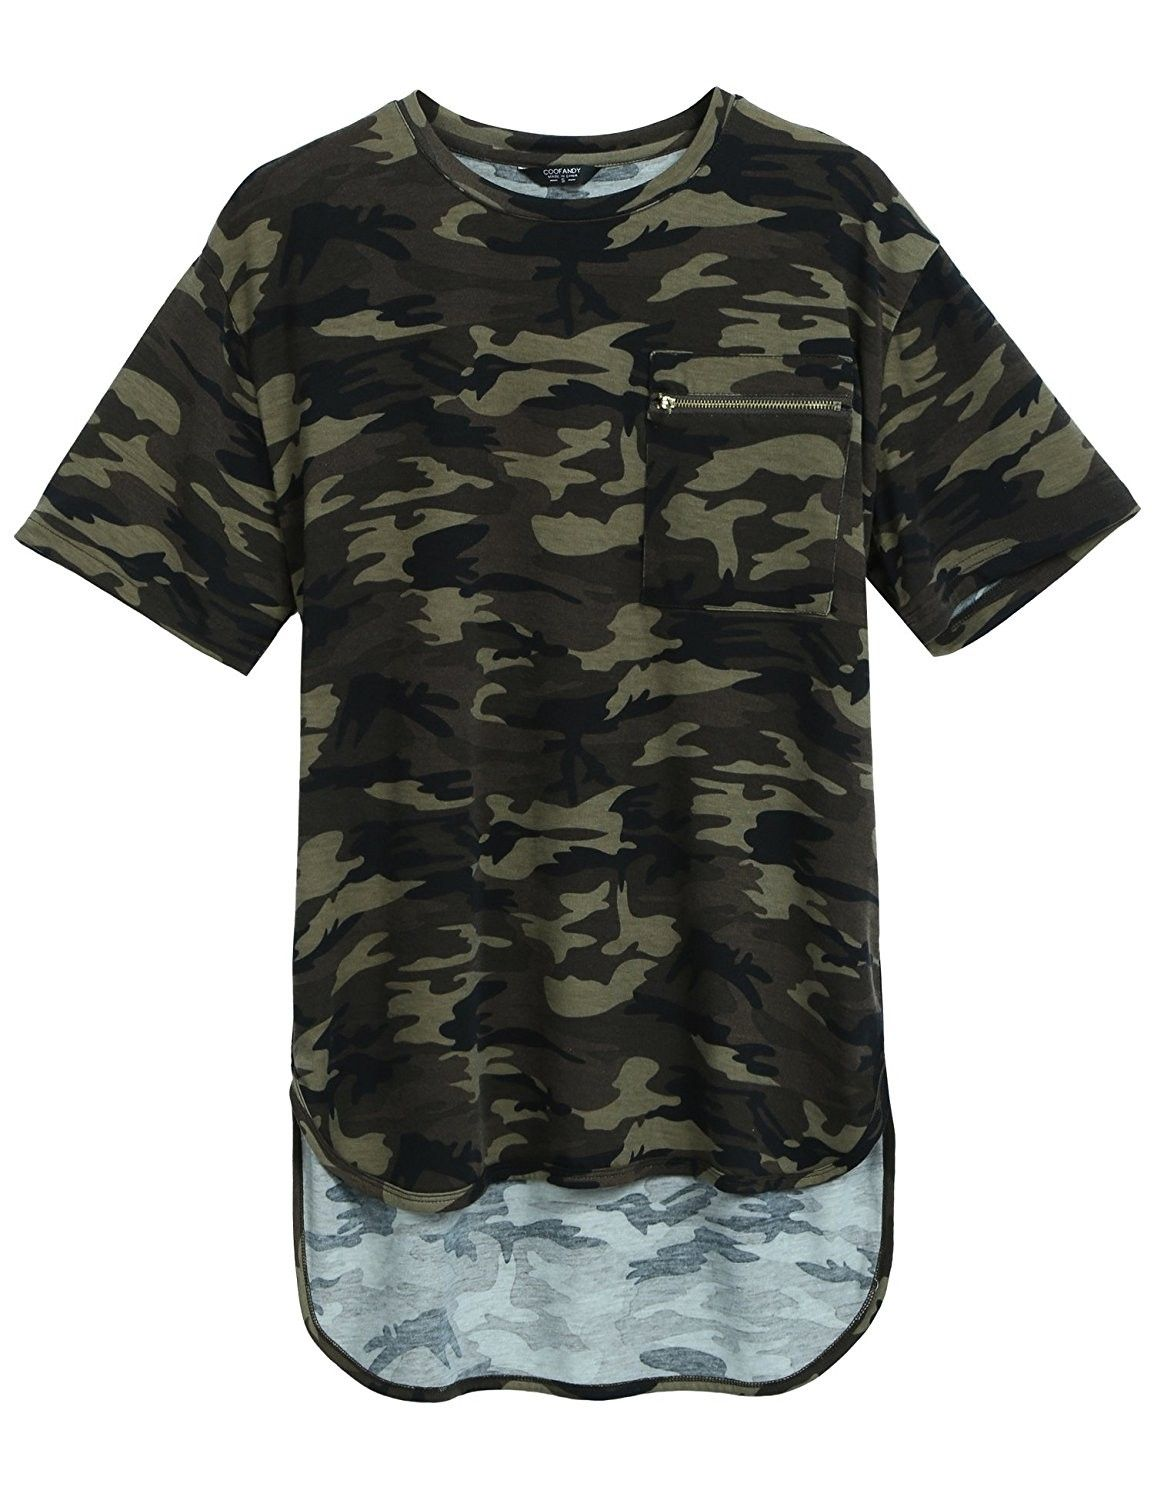 a85df8461a9b Mens Summer Hipster Hip Hop Camo-Camouflage T Shirts Longline Tee With  Zipper Pocket - Army Green - CL183EZZT4R,Men's Clothing, T-Shirts & Tanks,  ...